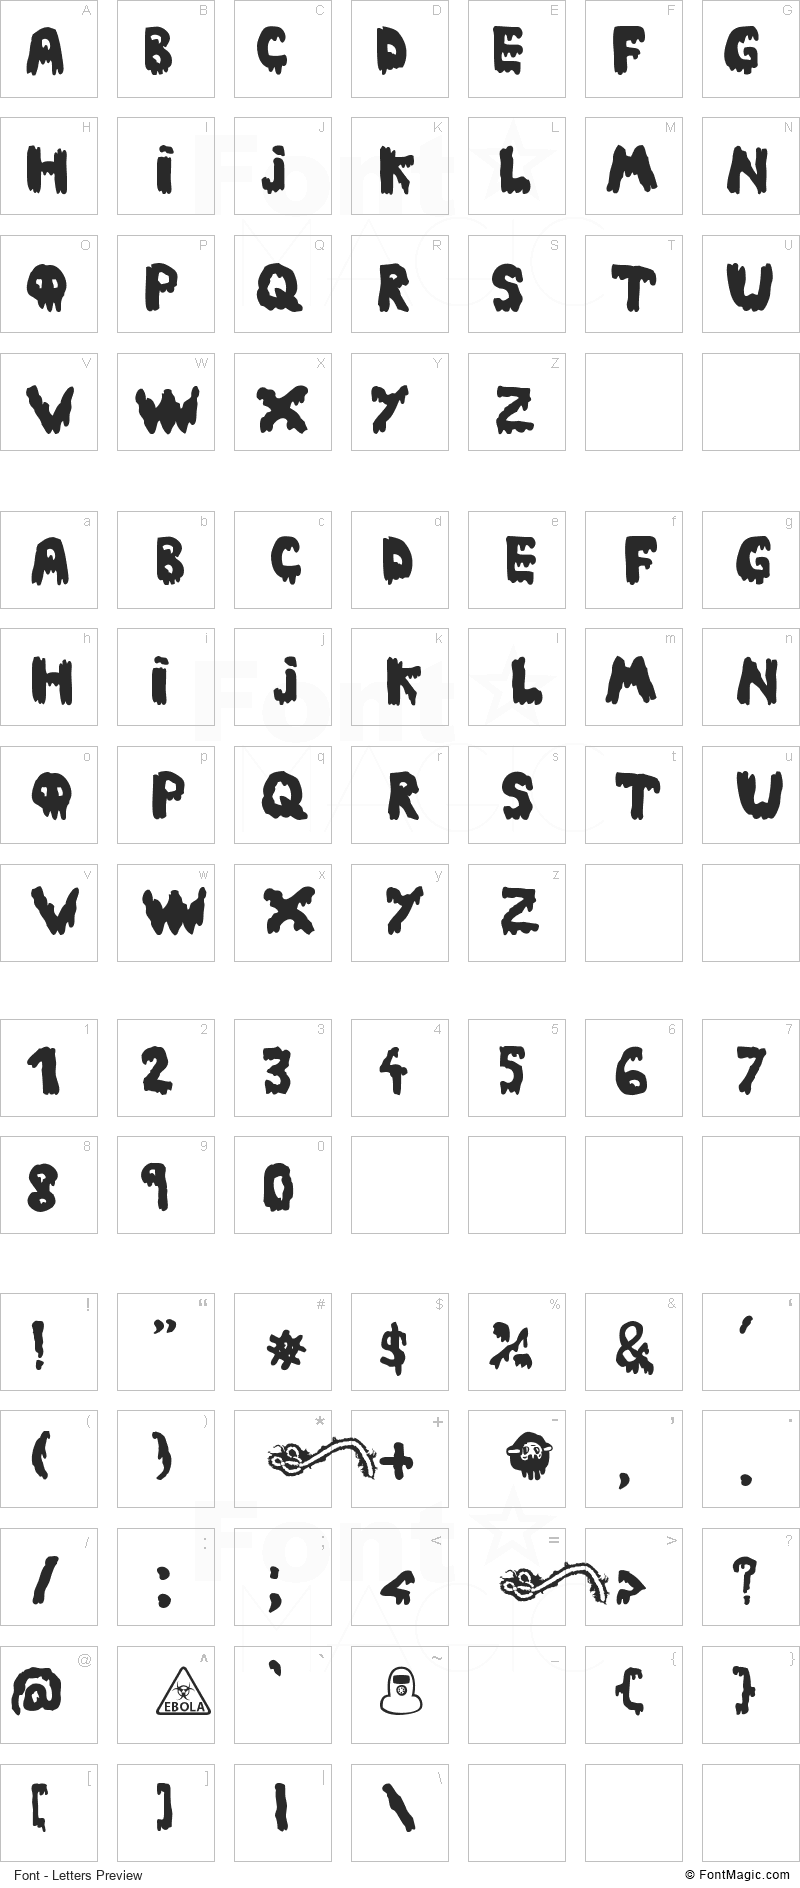 Ebola Font Font - All Latters Preview Chart